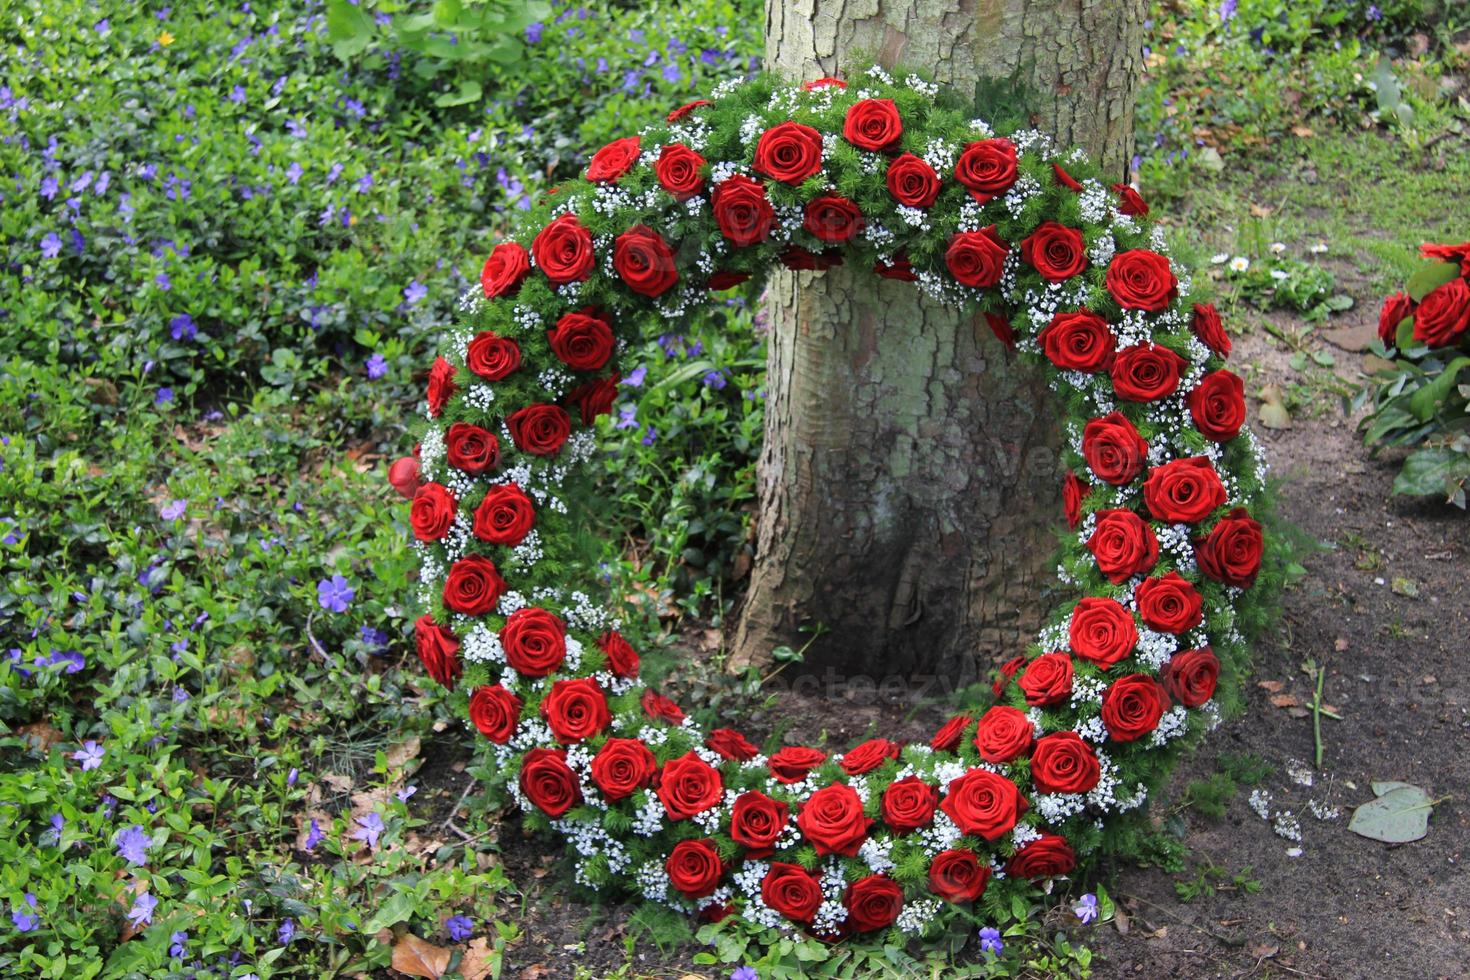 Funeral red rose wreath near a tree photo